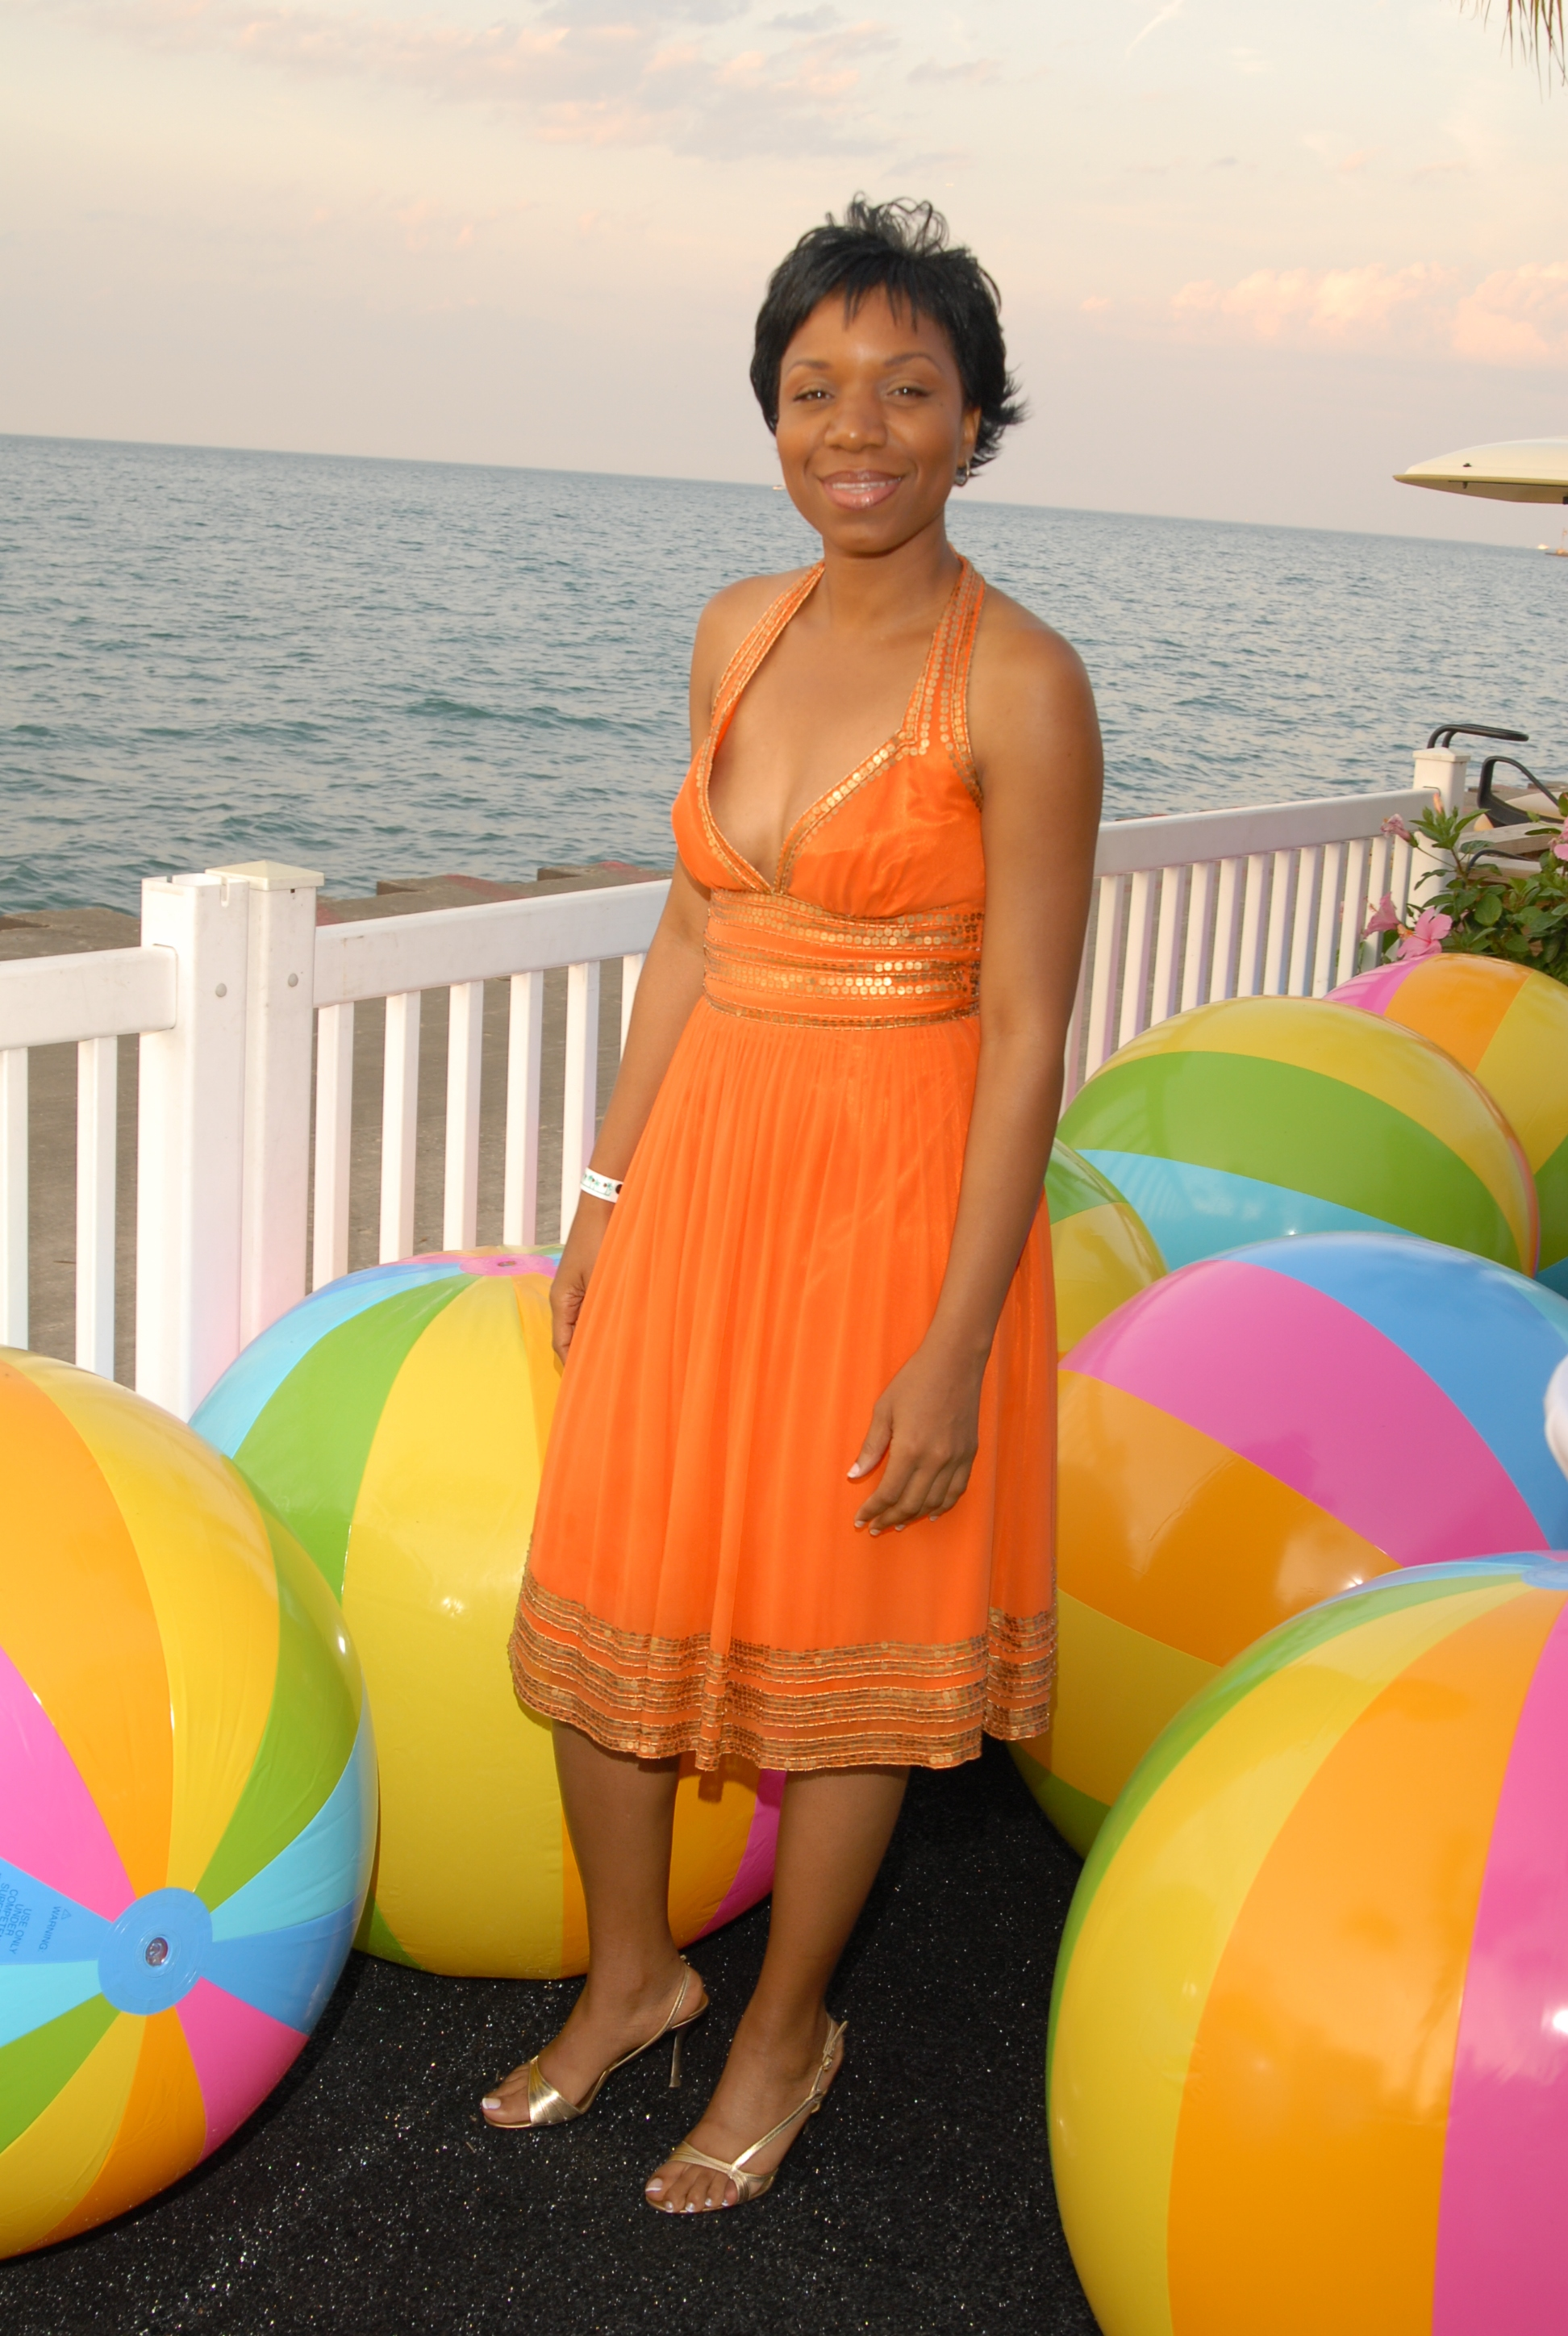 Chicago-beachfront-event-image-joanne-klee-marketing